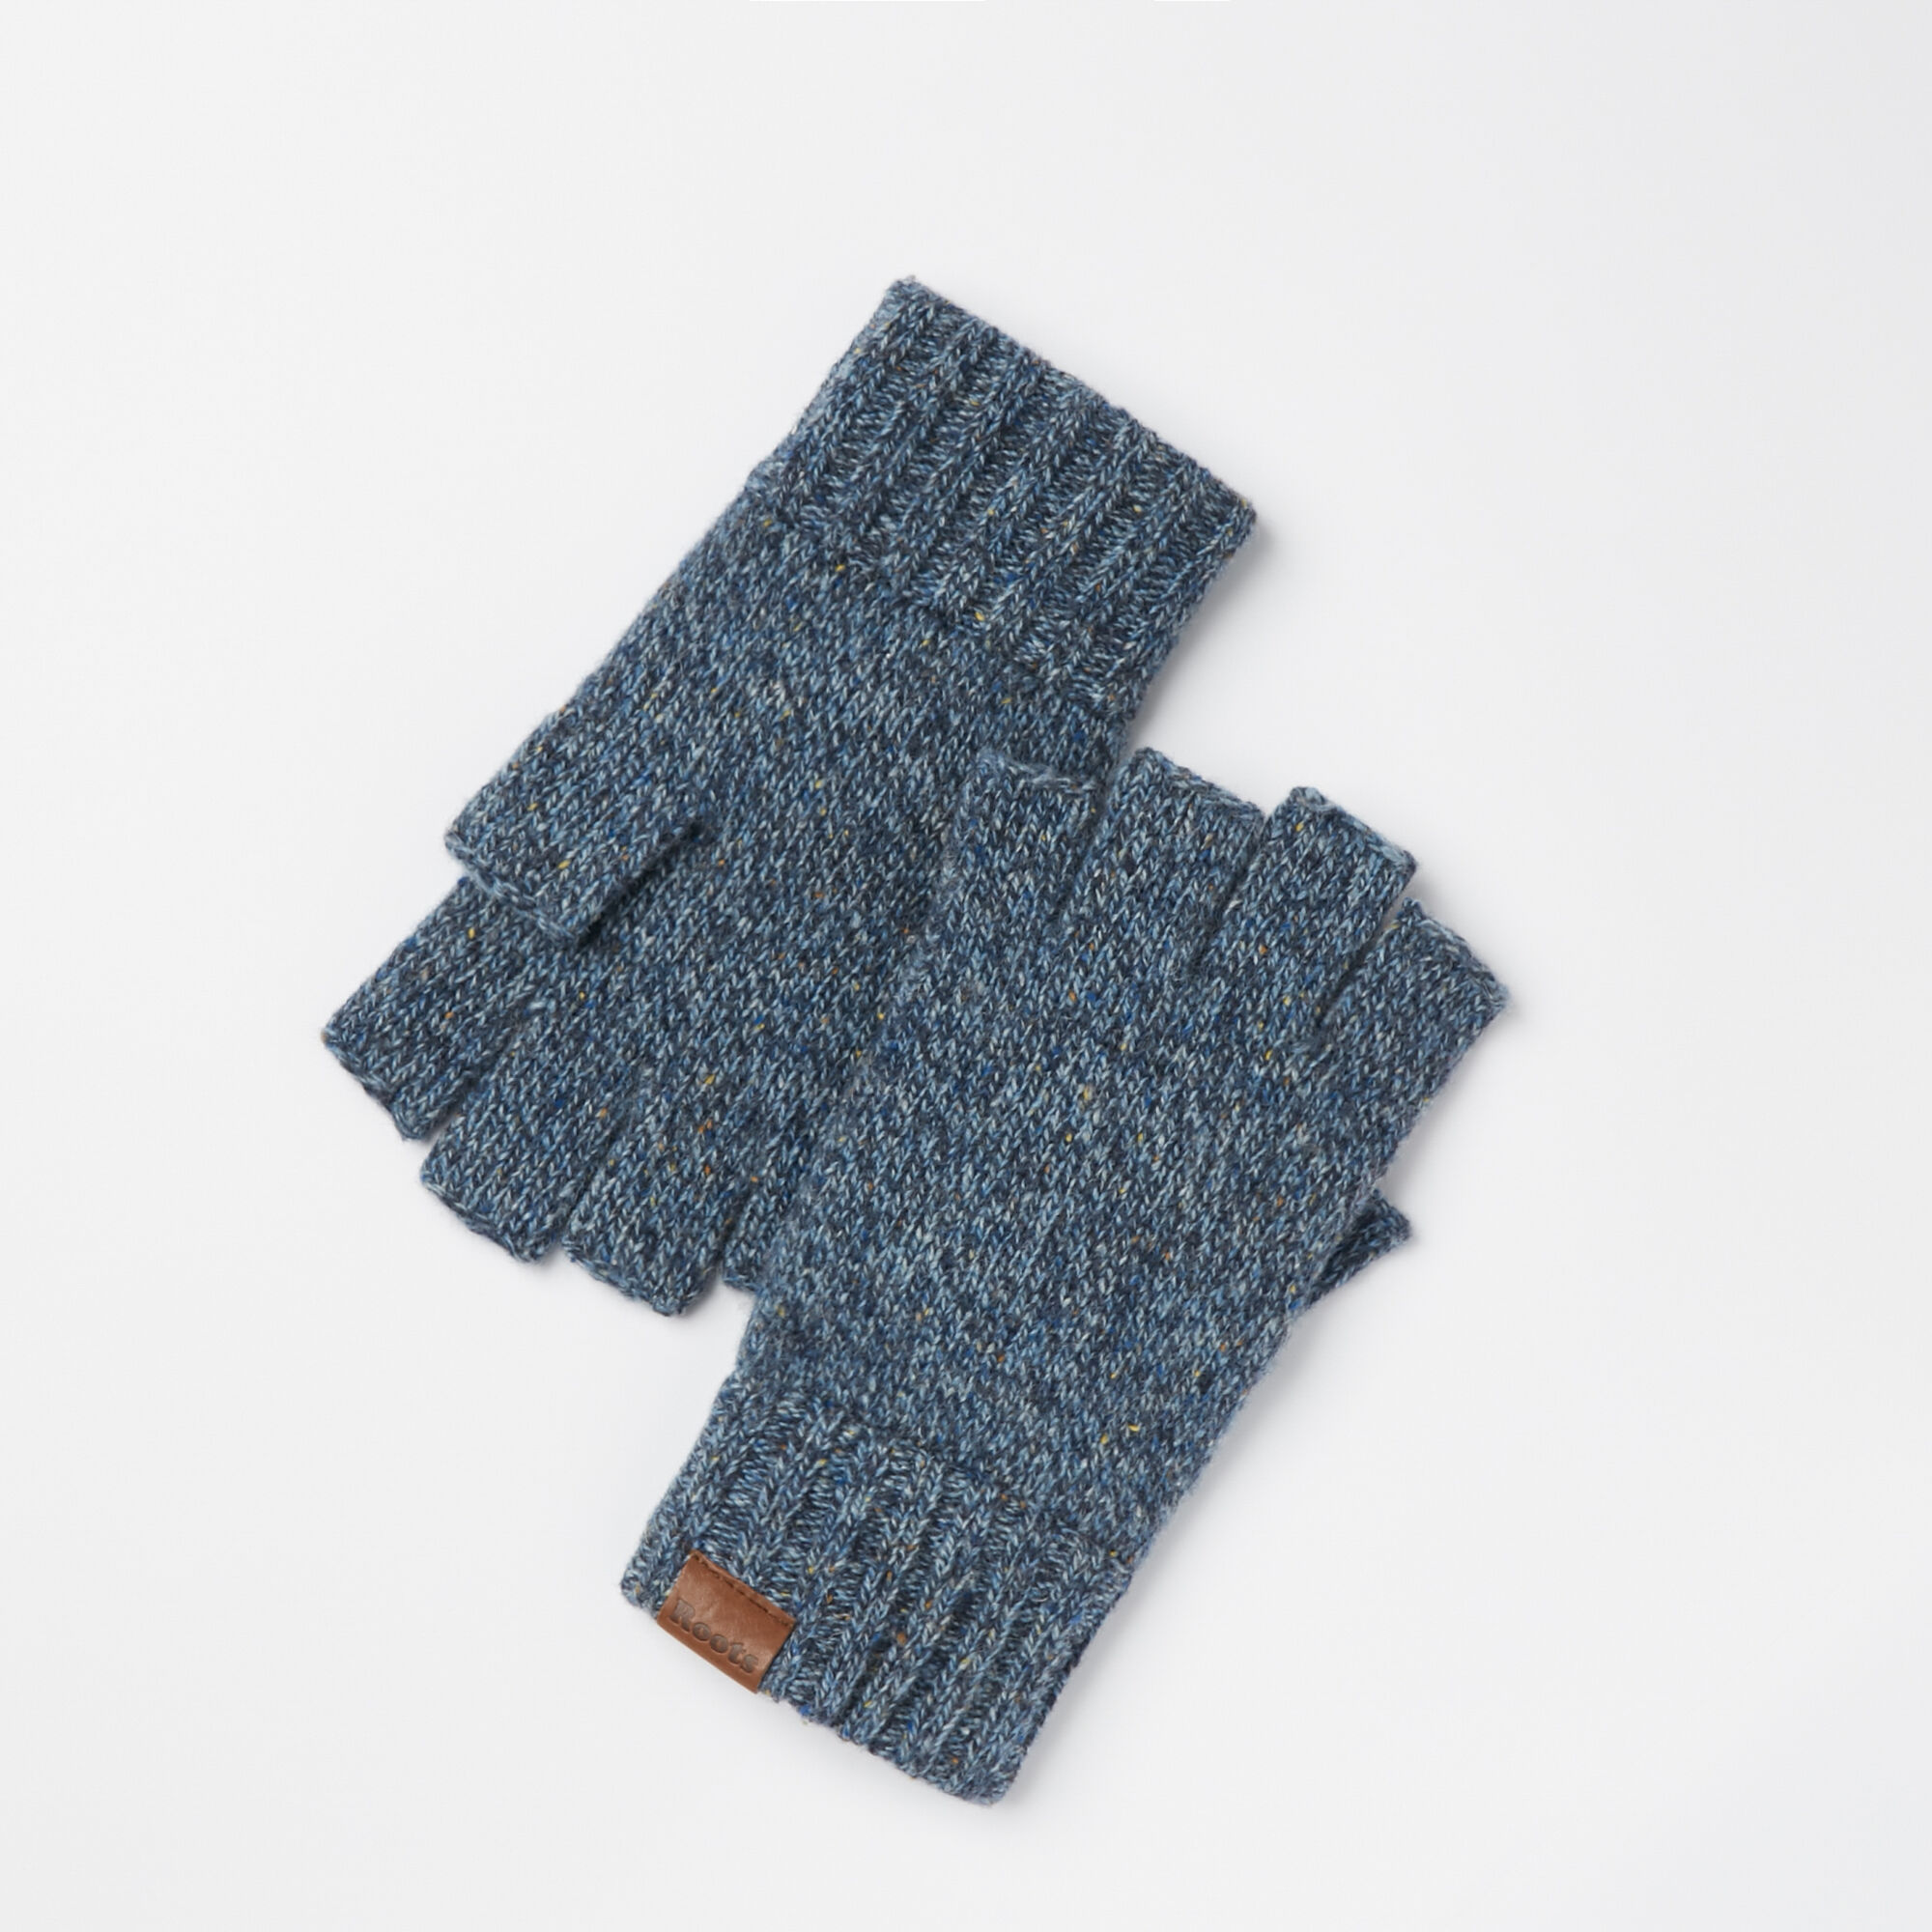 Fingerless gloves canada - Mens Donegal Fingerless Glove